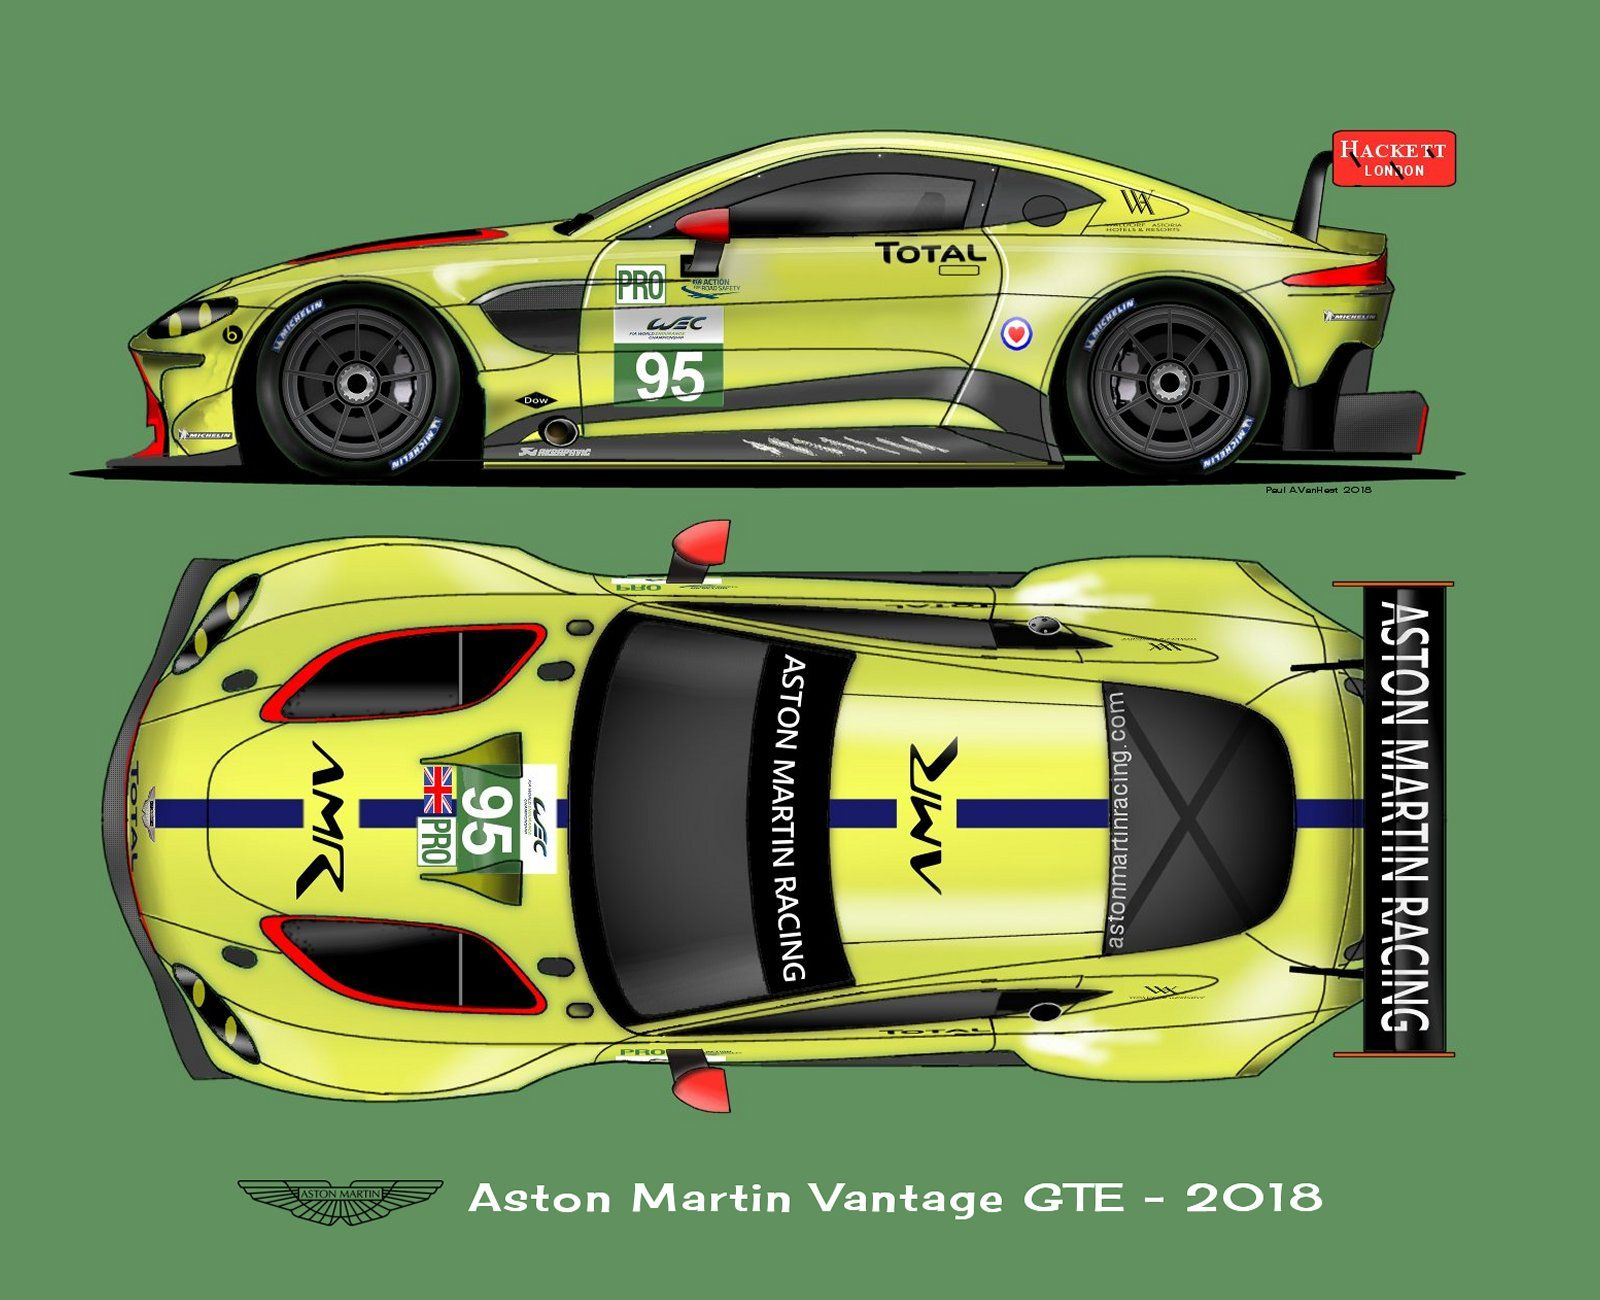 Race Car Stickers >> Aston Martin Vantage GTE 2018 | Art / shirts | Pinterest | Aston martin vantage, Aston martin ...